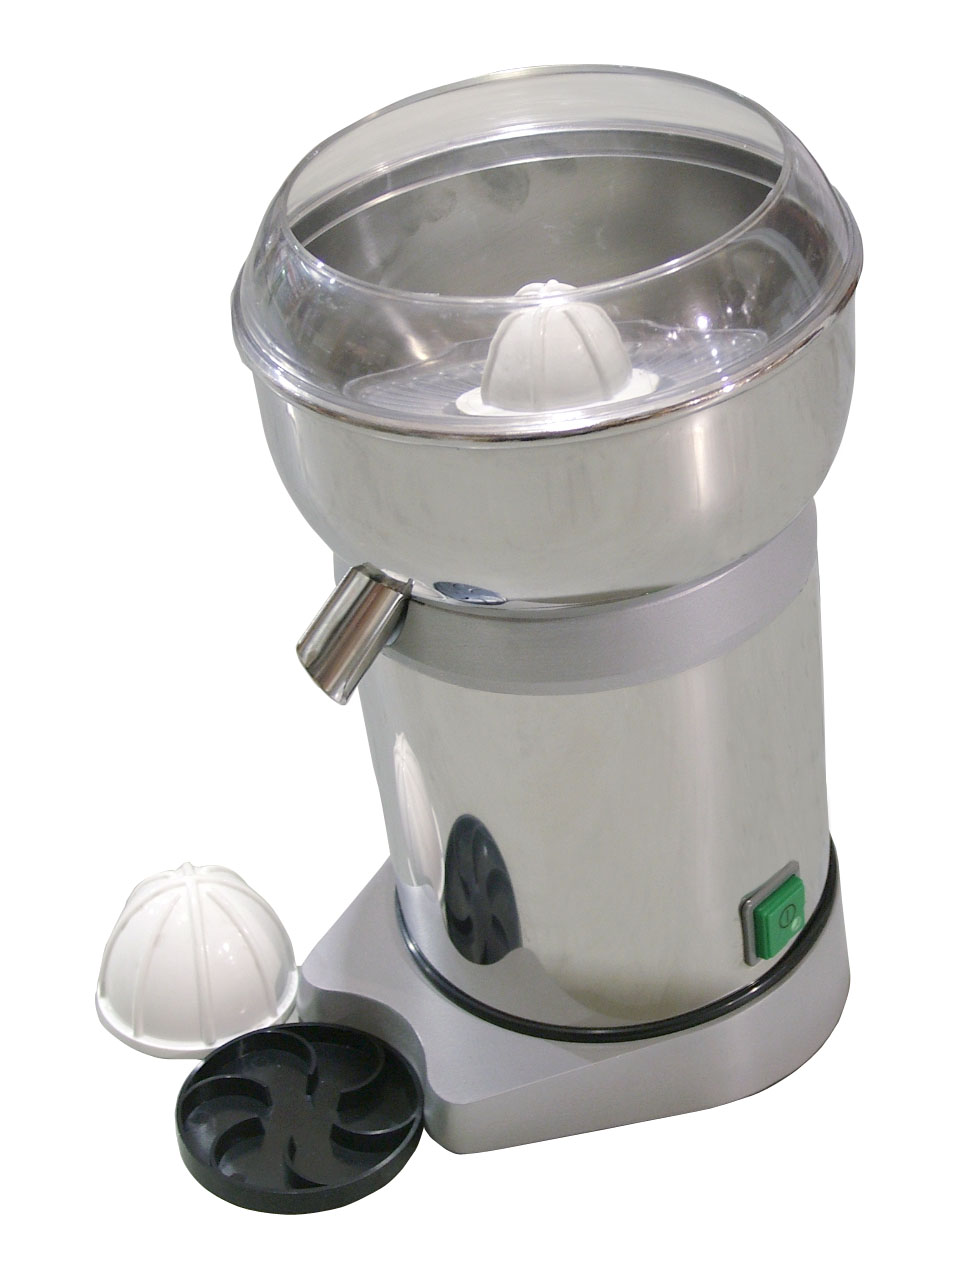 OMCAN 0.33HP Professional Citrus Juice Extractor Juicer